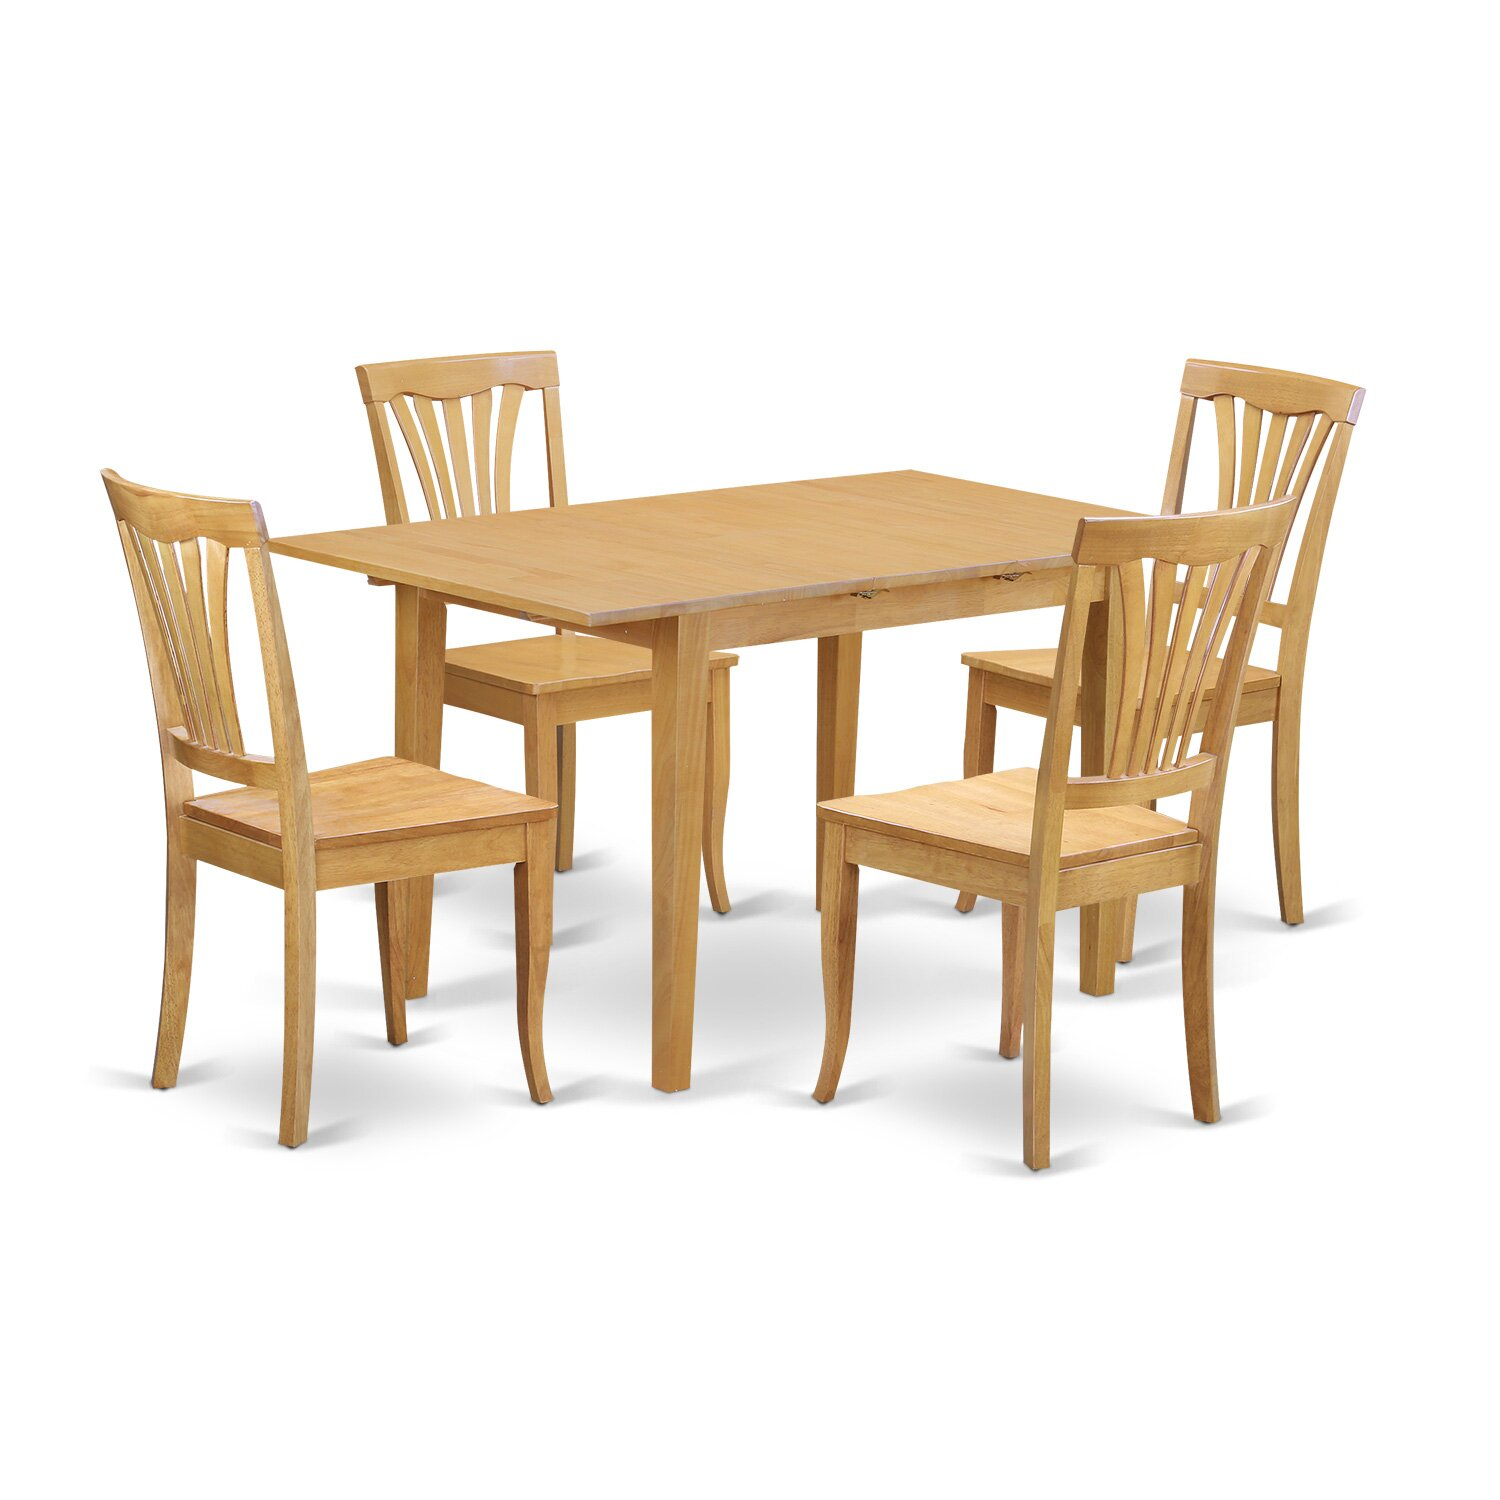 East west norfolk 5 piece dining set wayfair for Kitchen dinette sets